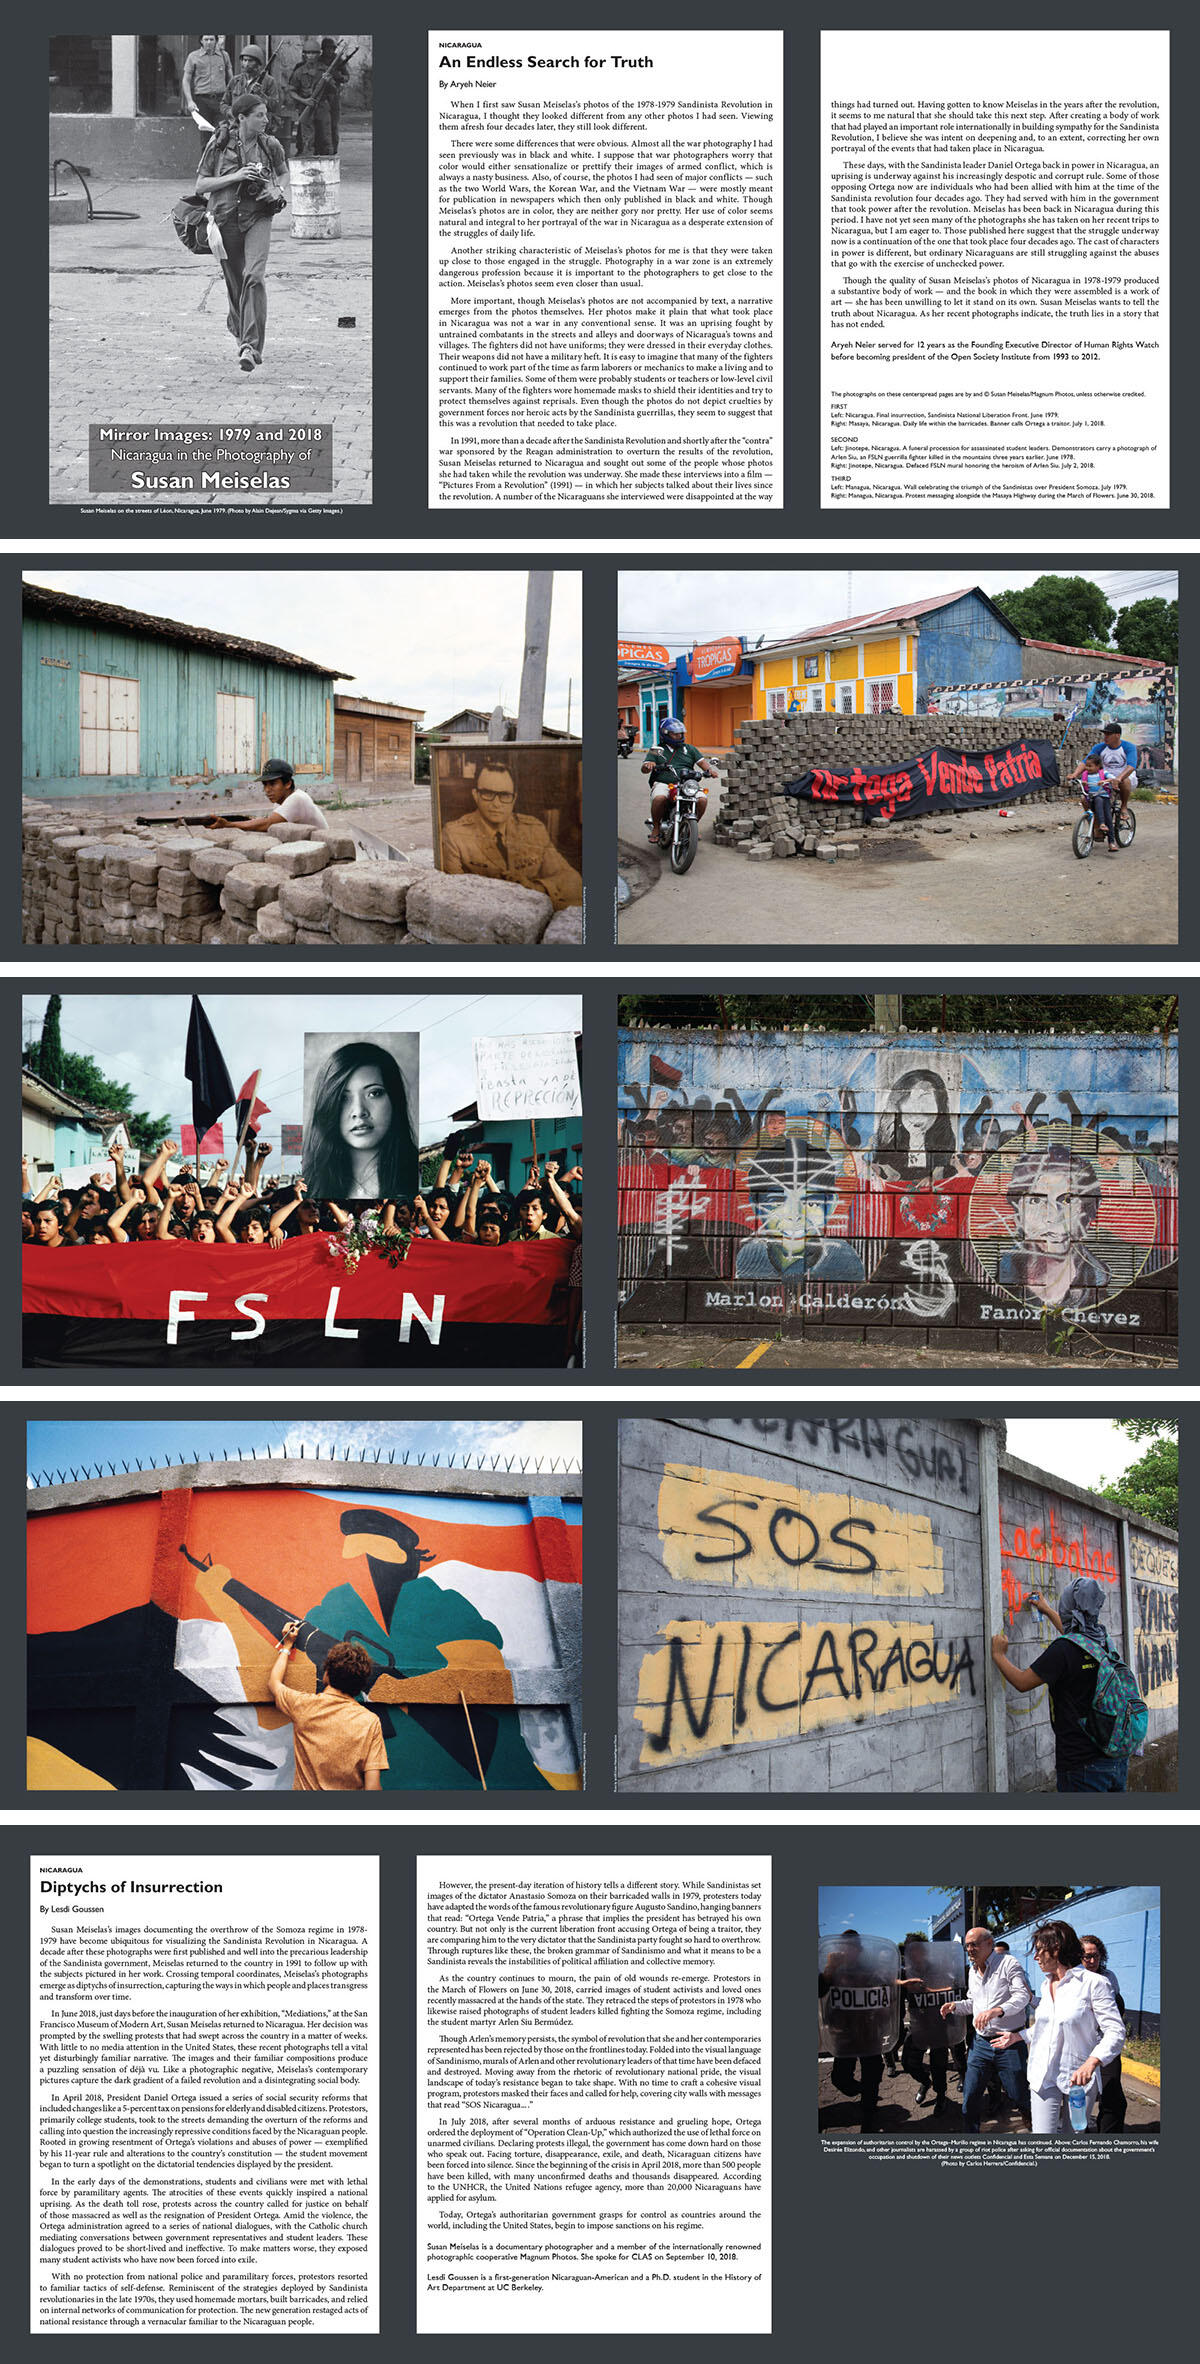 The complete section of Susan Meiselas photos and articles from the Fall 2018 Berkeley Review of Latin American Studies, featuring photos by Meiselas. (Photos by and © Susan Meiselas/Magnum Photos.)